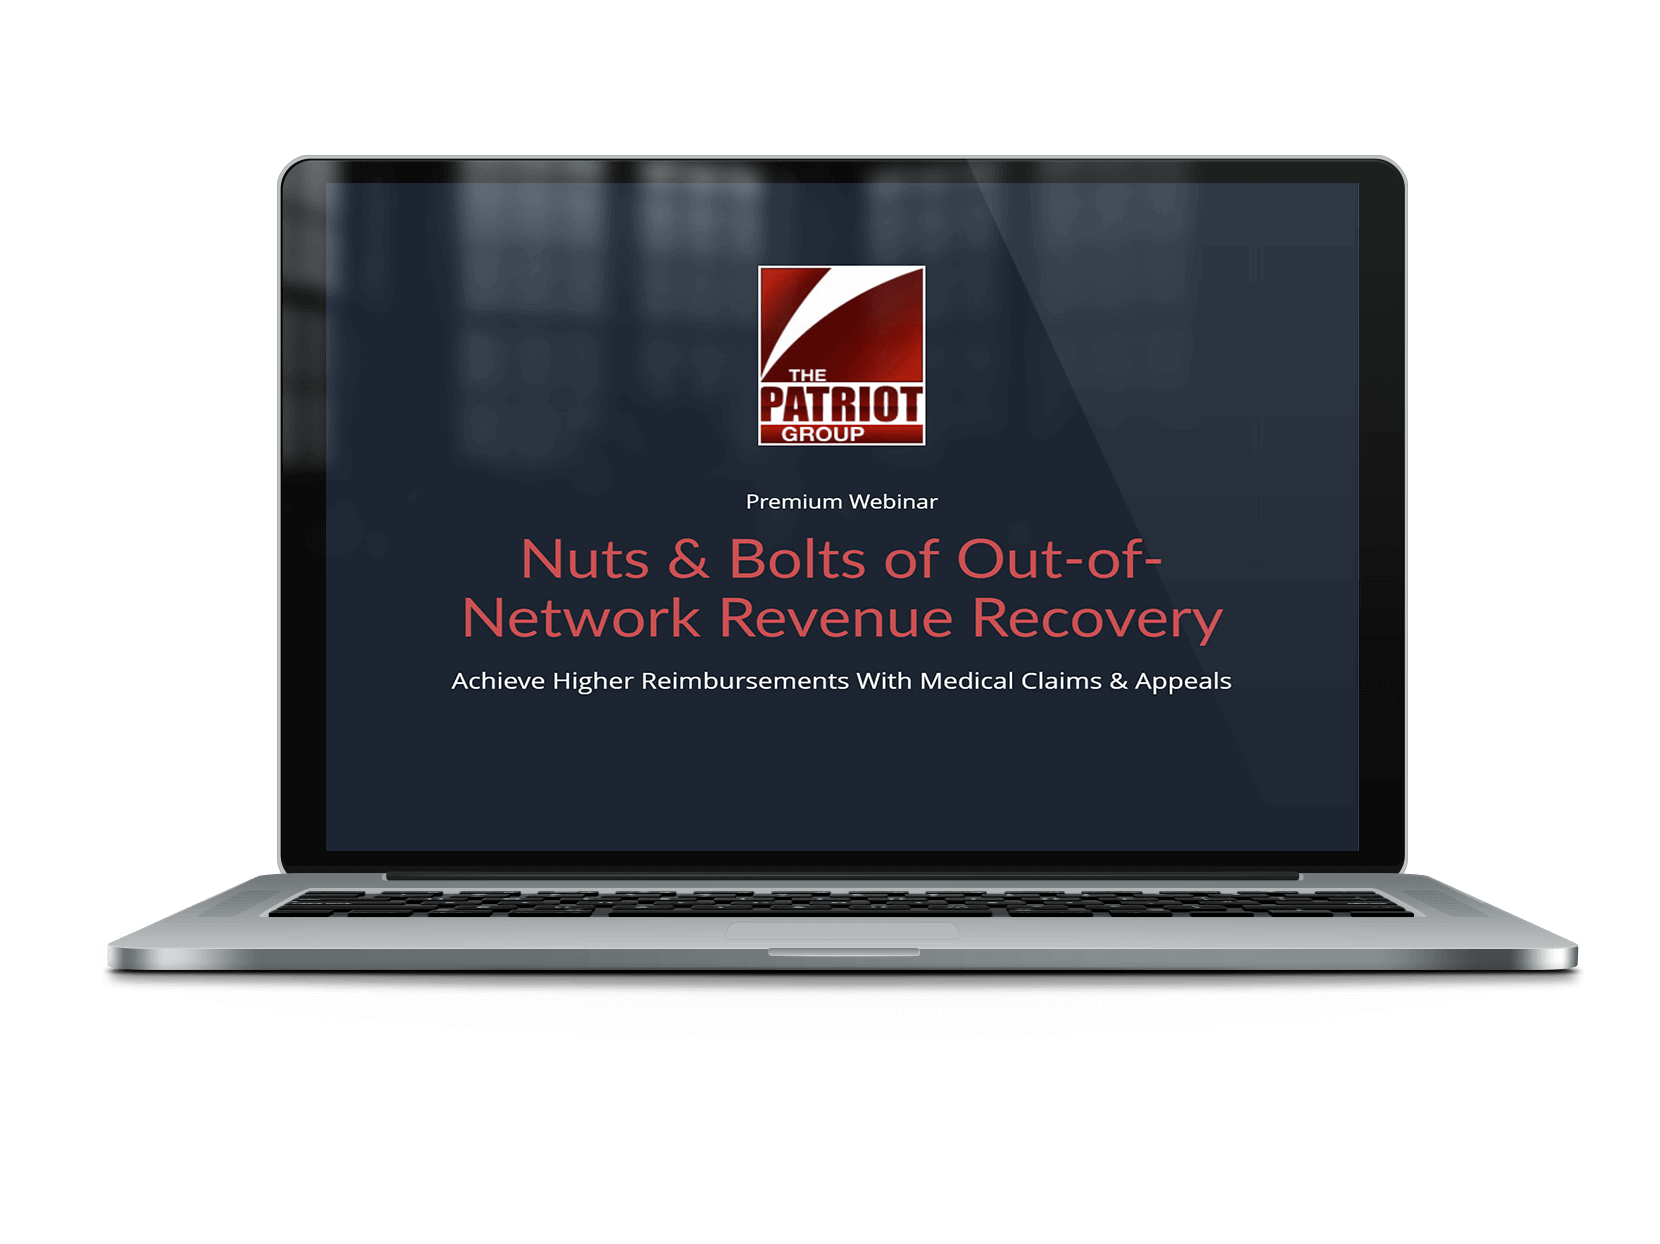 Nuts & Bolts of Out-of-Network Revenue Recovery